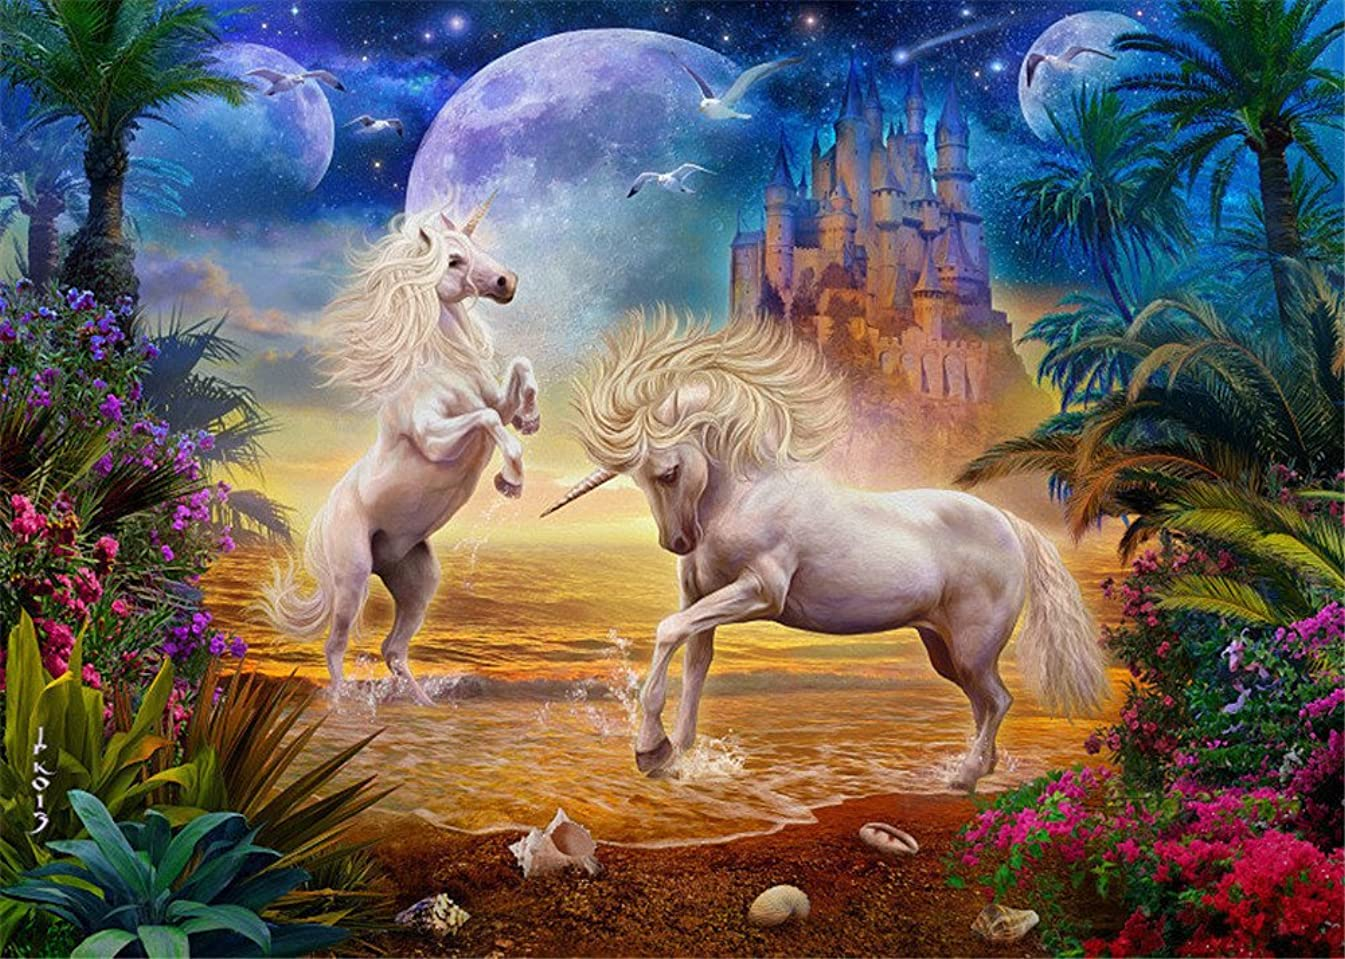 DIY Oil Painting Paint by Number for Adults Kids Beginner, Komking Paint by Number Kit with Brush Canvas - Unicorn Seaside 16x20inch Frameless